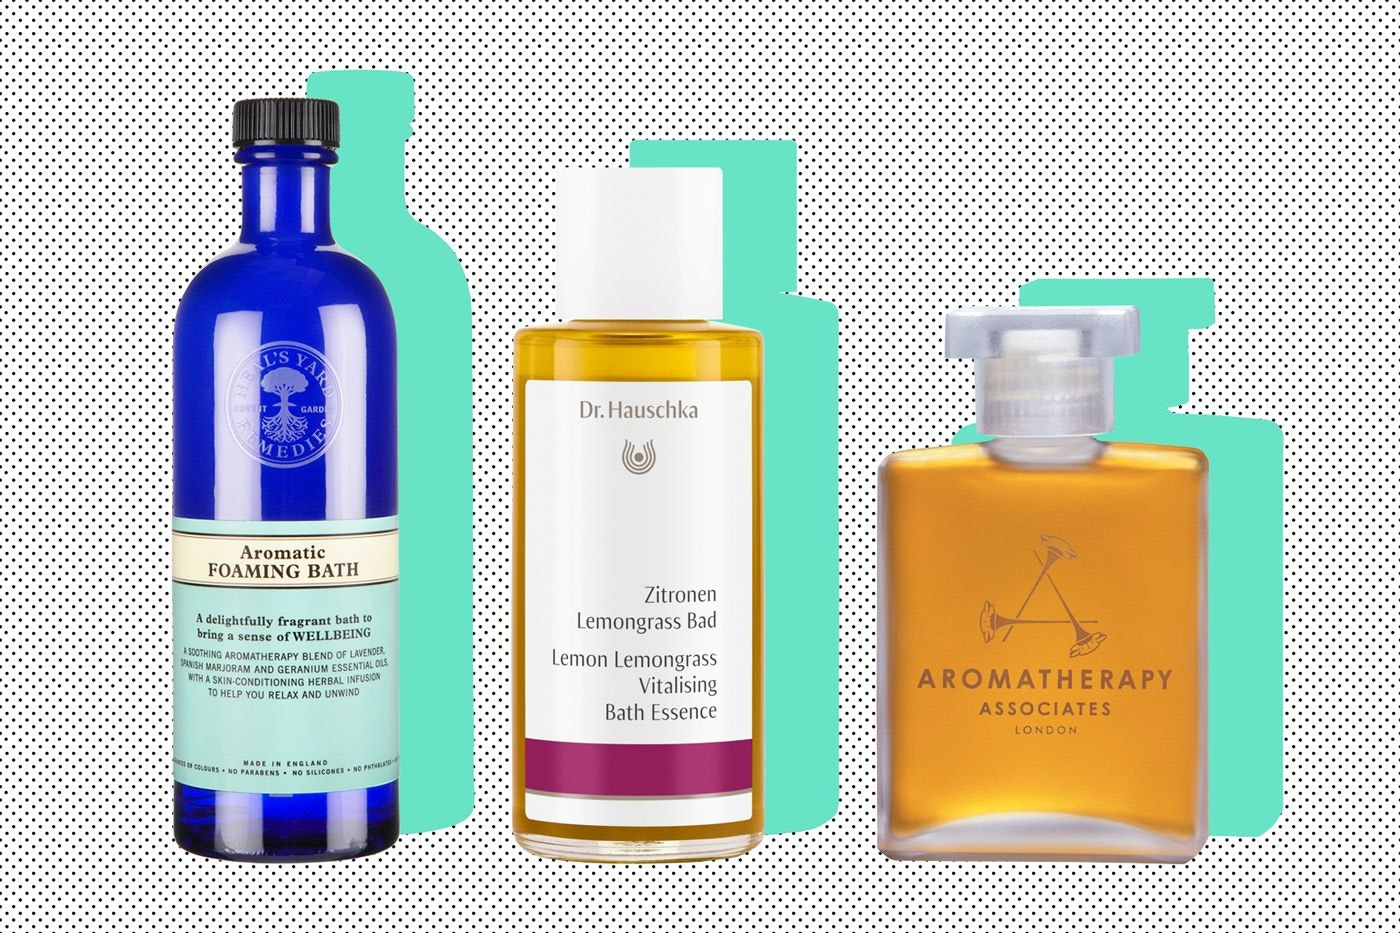 Watch Friday Treat Competition Win An Aromatherapy Associates Anti-Ageing Set video